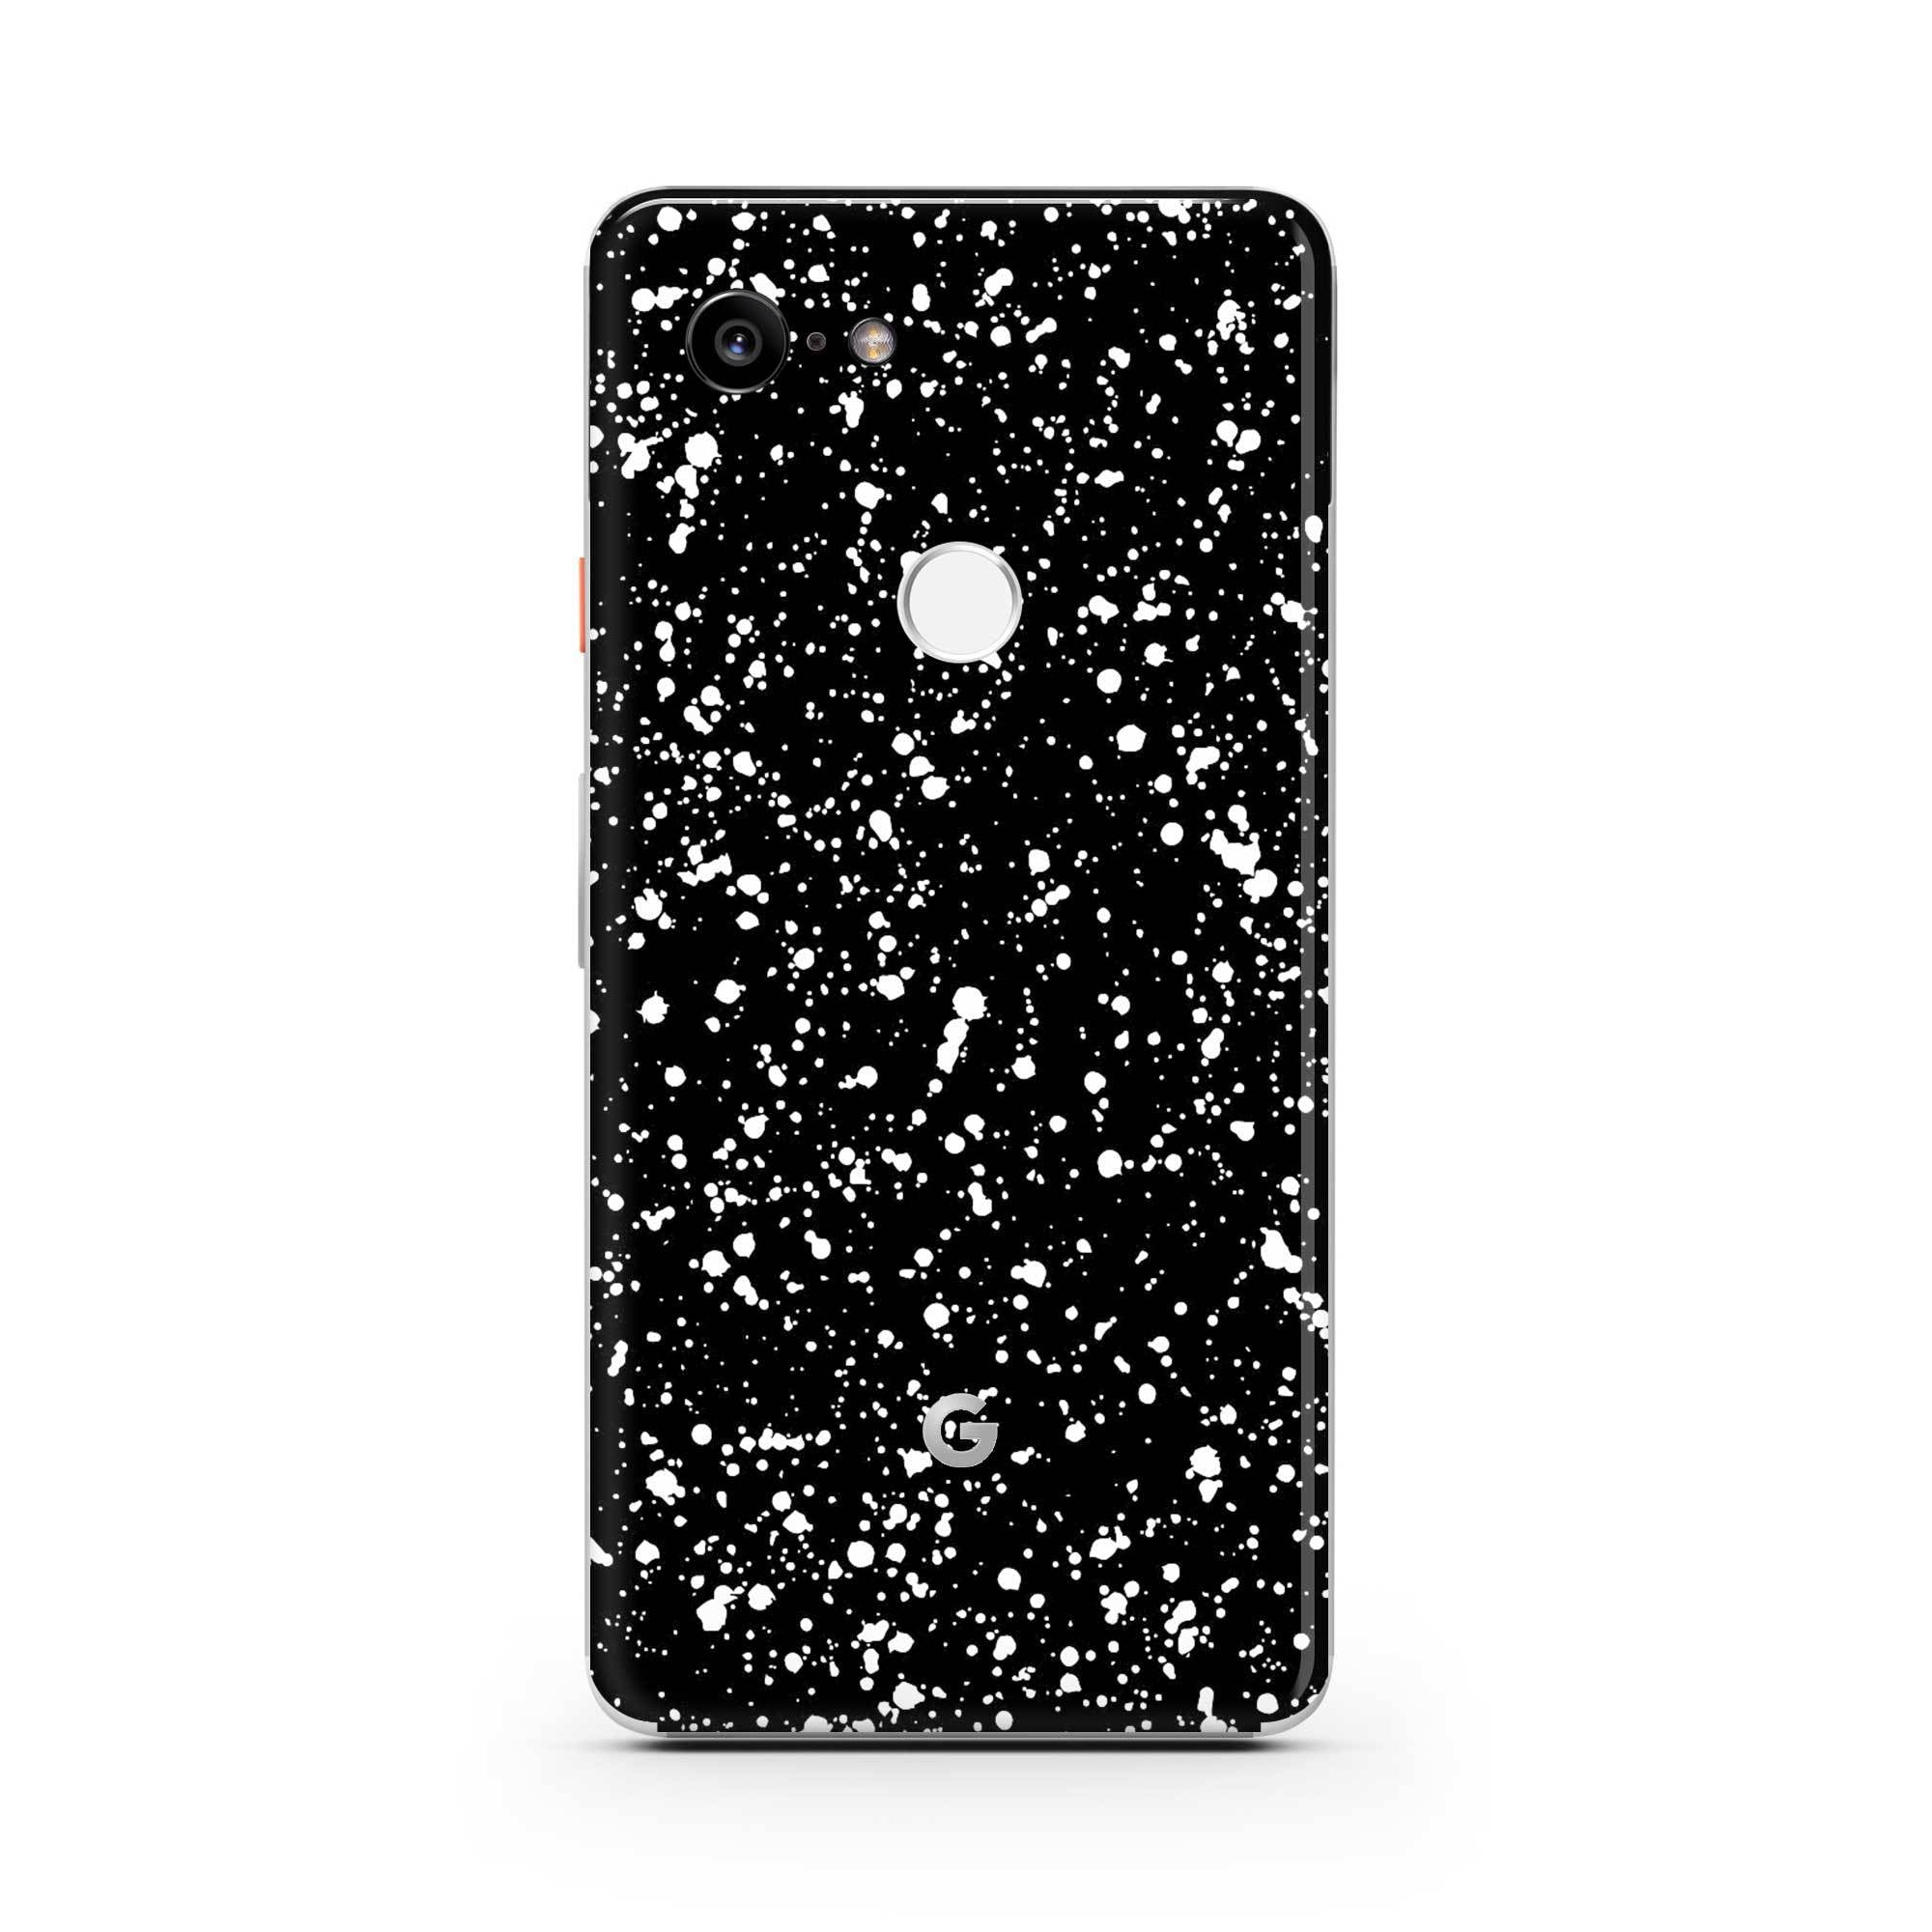 Black Speckle Pixel 3 Skin + Case